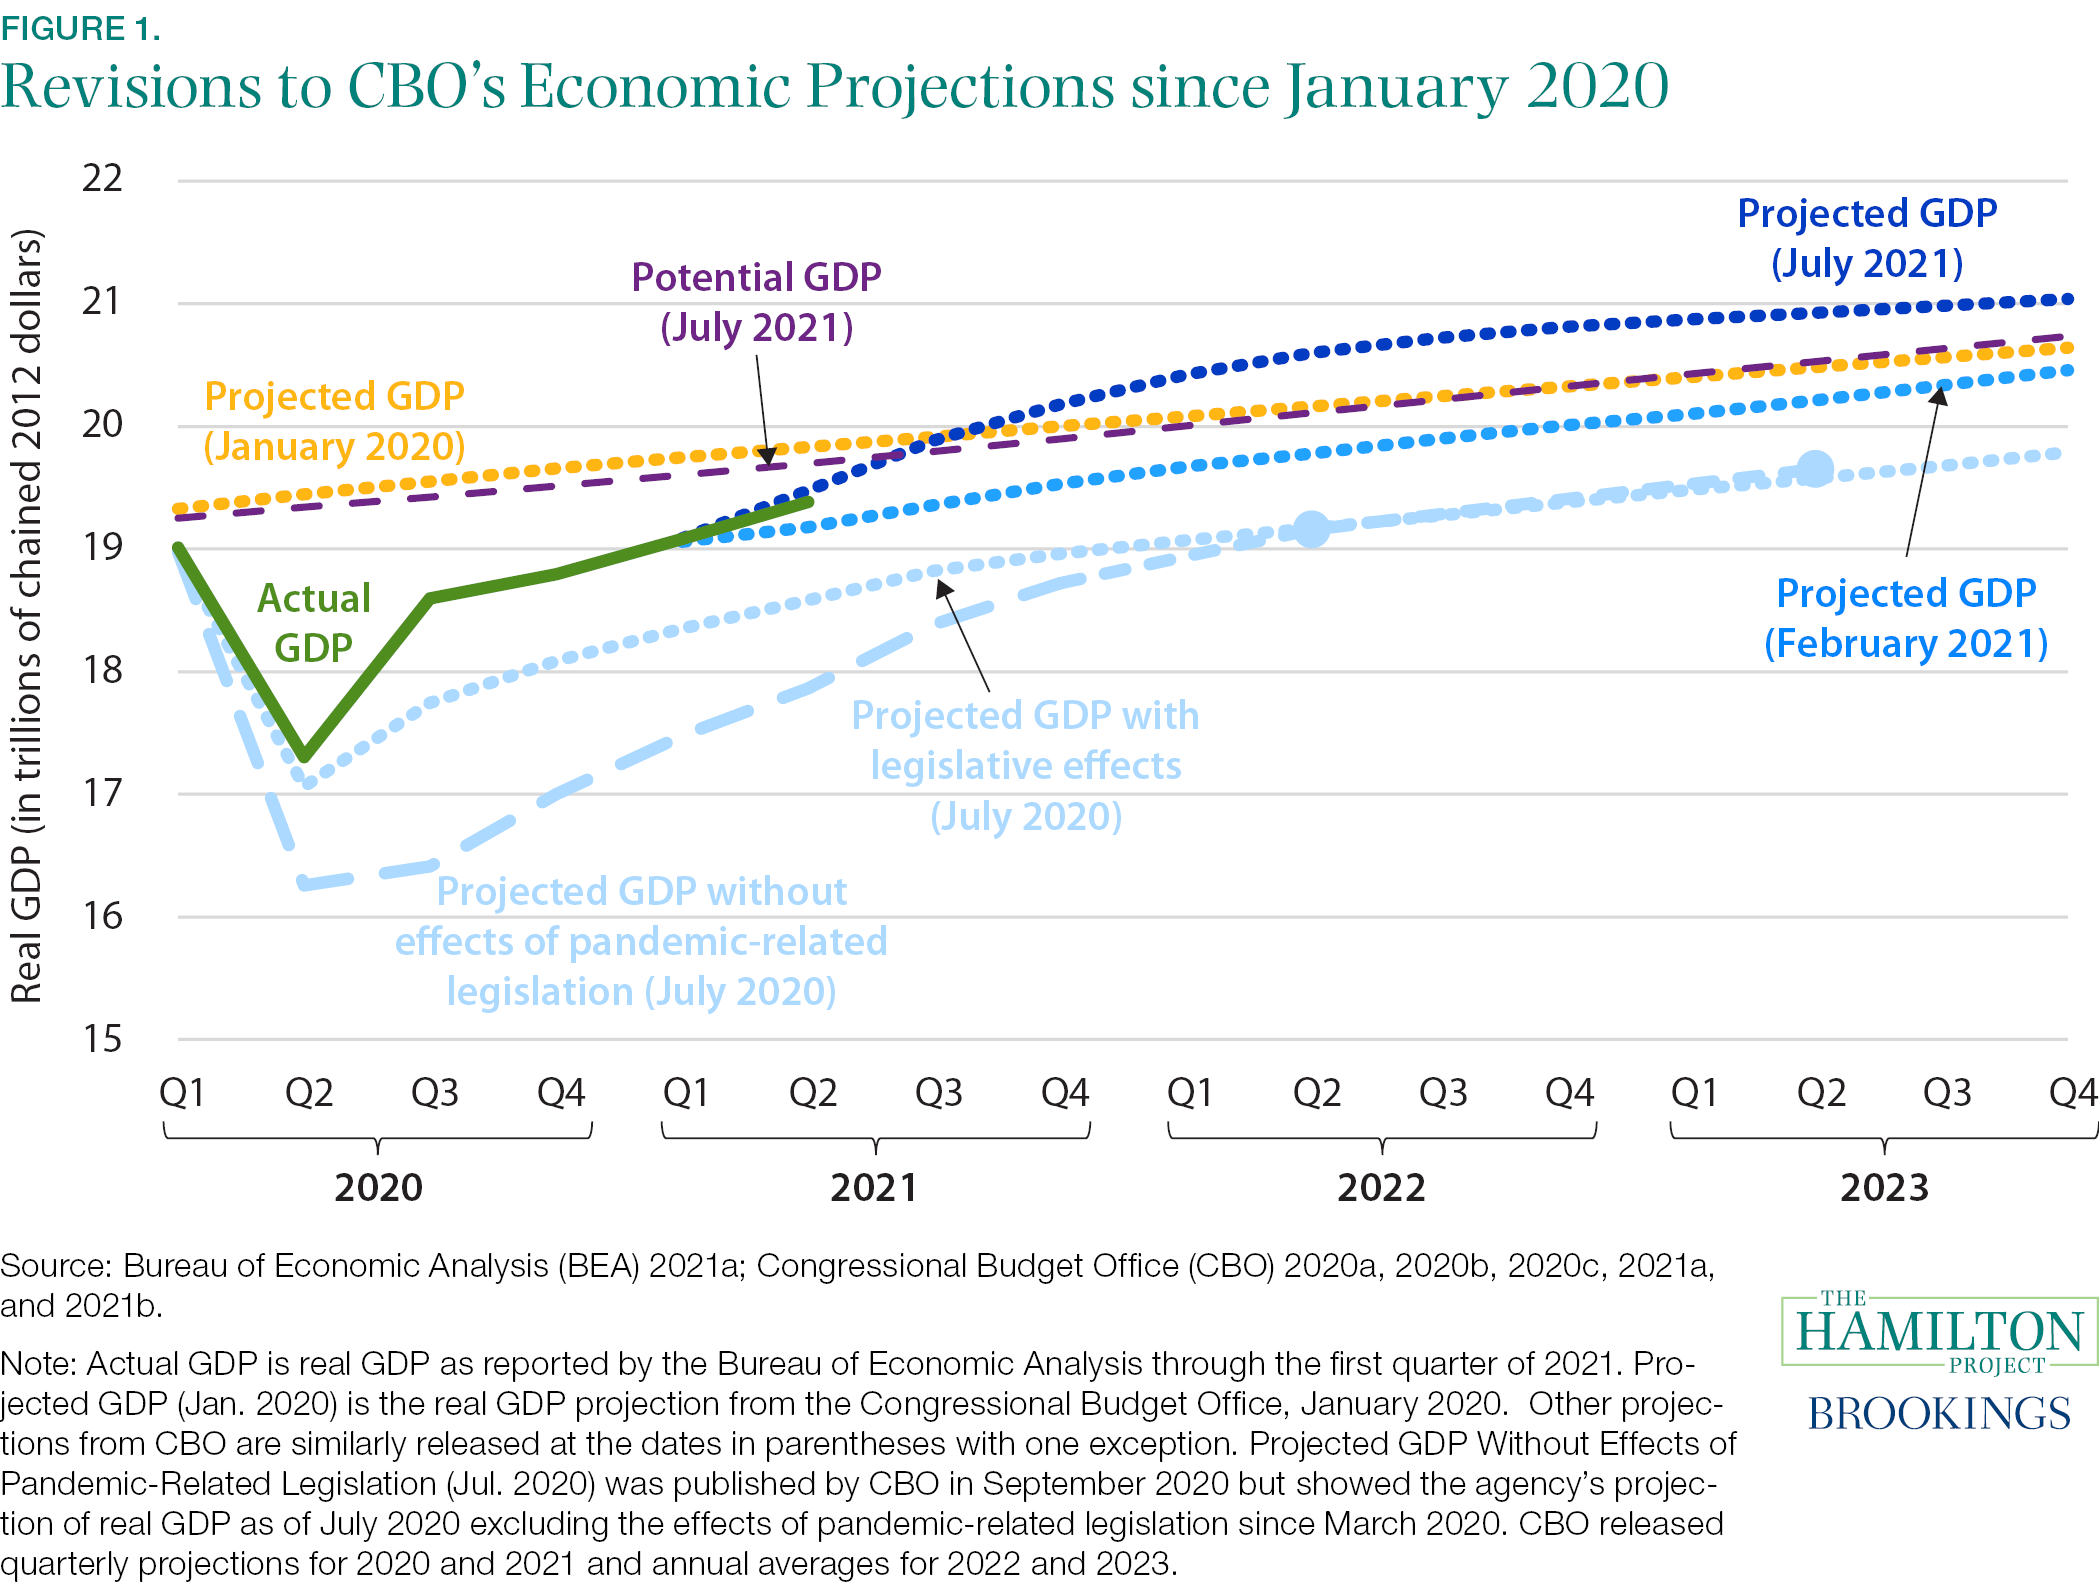 Fact 1: In the second quarter of 2021, GDP returned to its pre-pandemic level.